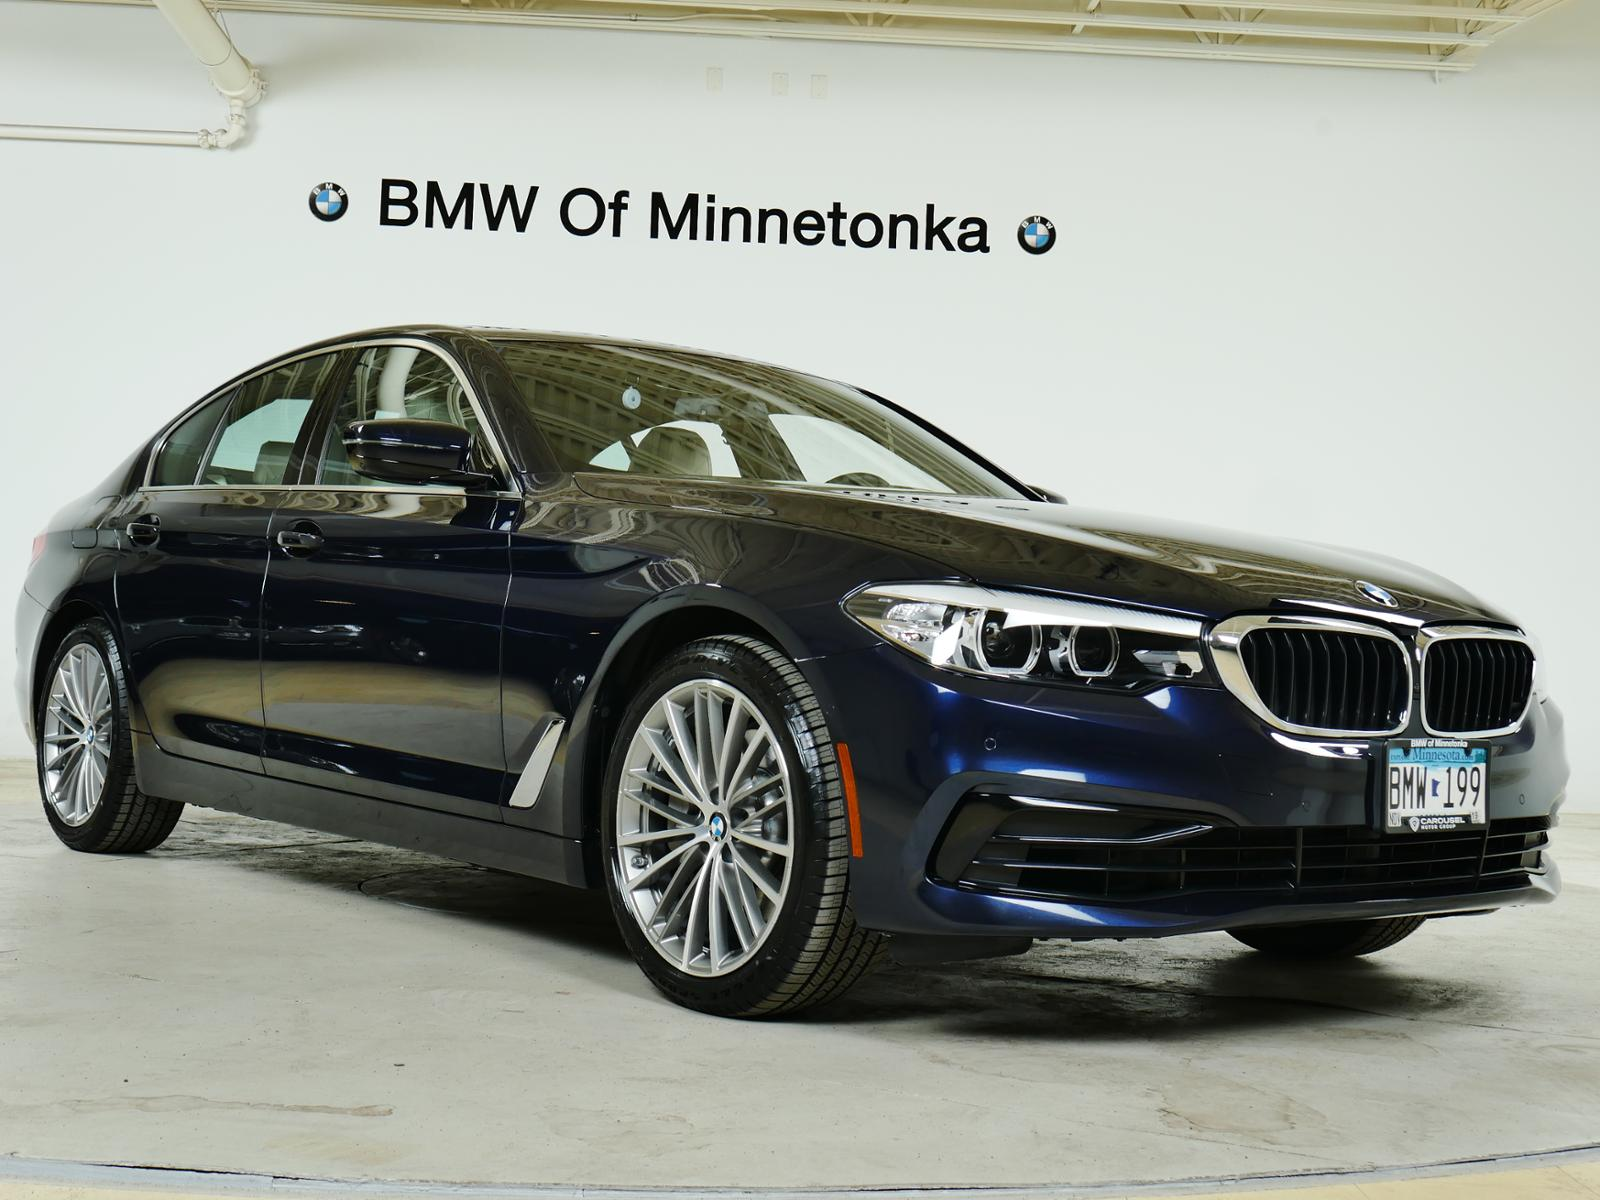 2019 BMW 5 Series 540i Xdrive   3.0L I6 Sedan in Minnetonka, MN